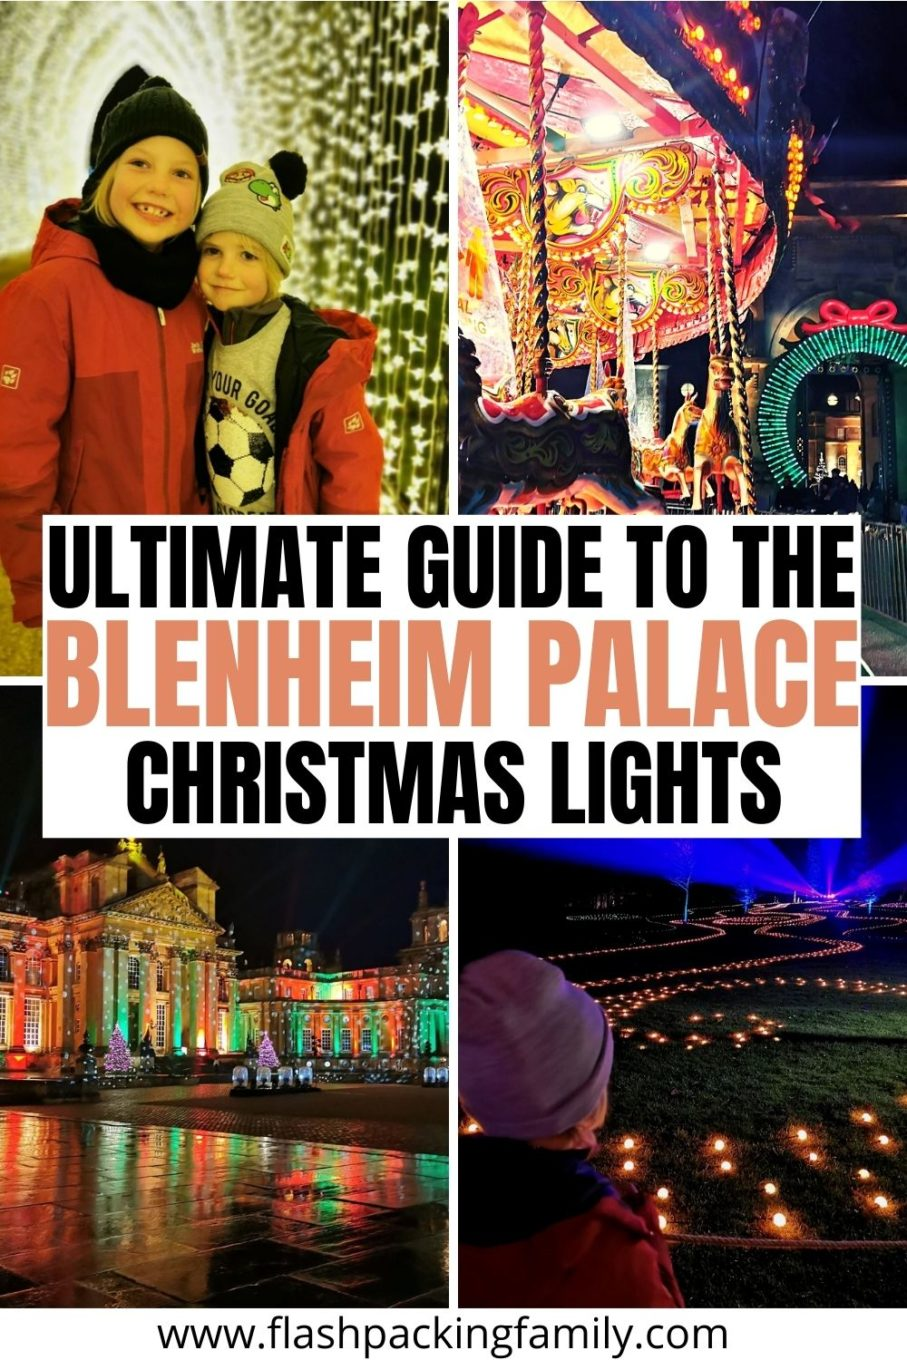 Ultimate Guide to the Blenheim Palace Christmas lights.